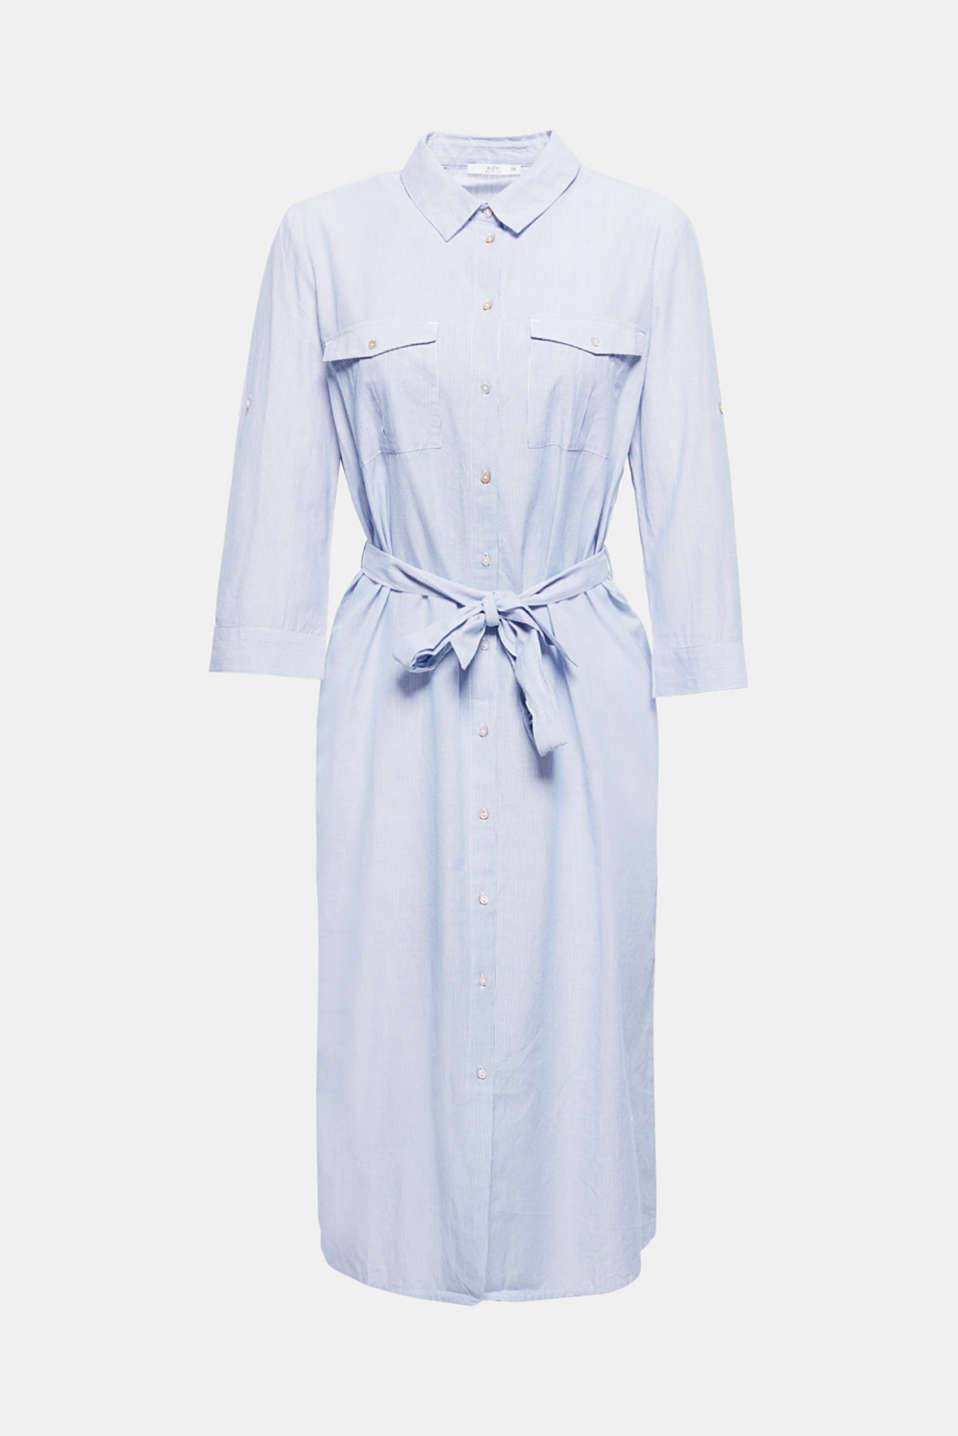 This finely striped shirt dress is a simple fashion piece, which enchants with mother-of-pearl buttons, an accenting tie-around belt and pure cotton fabric.